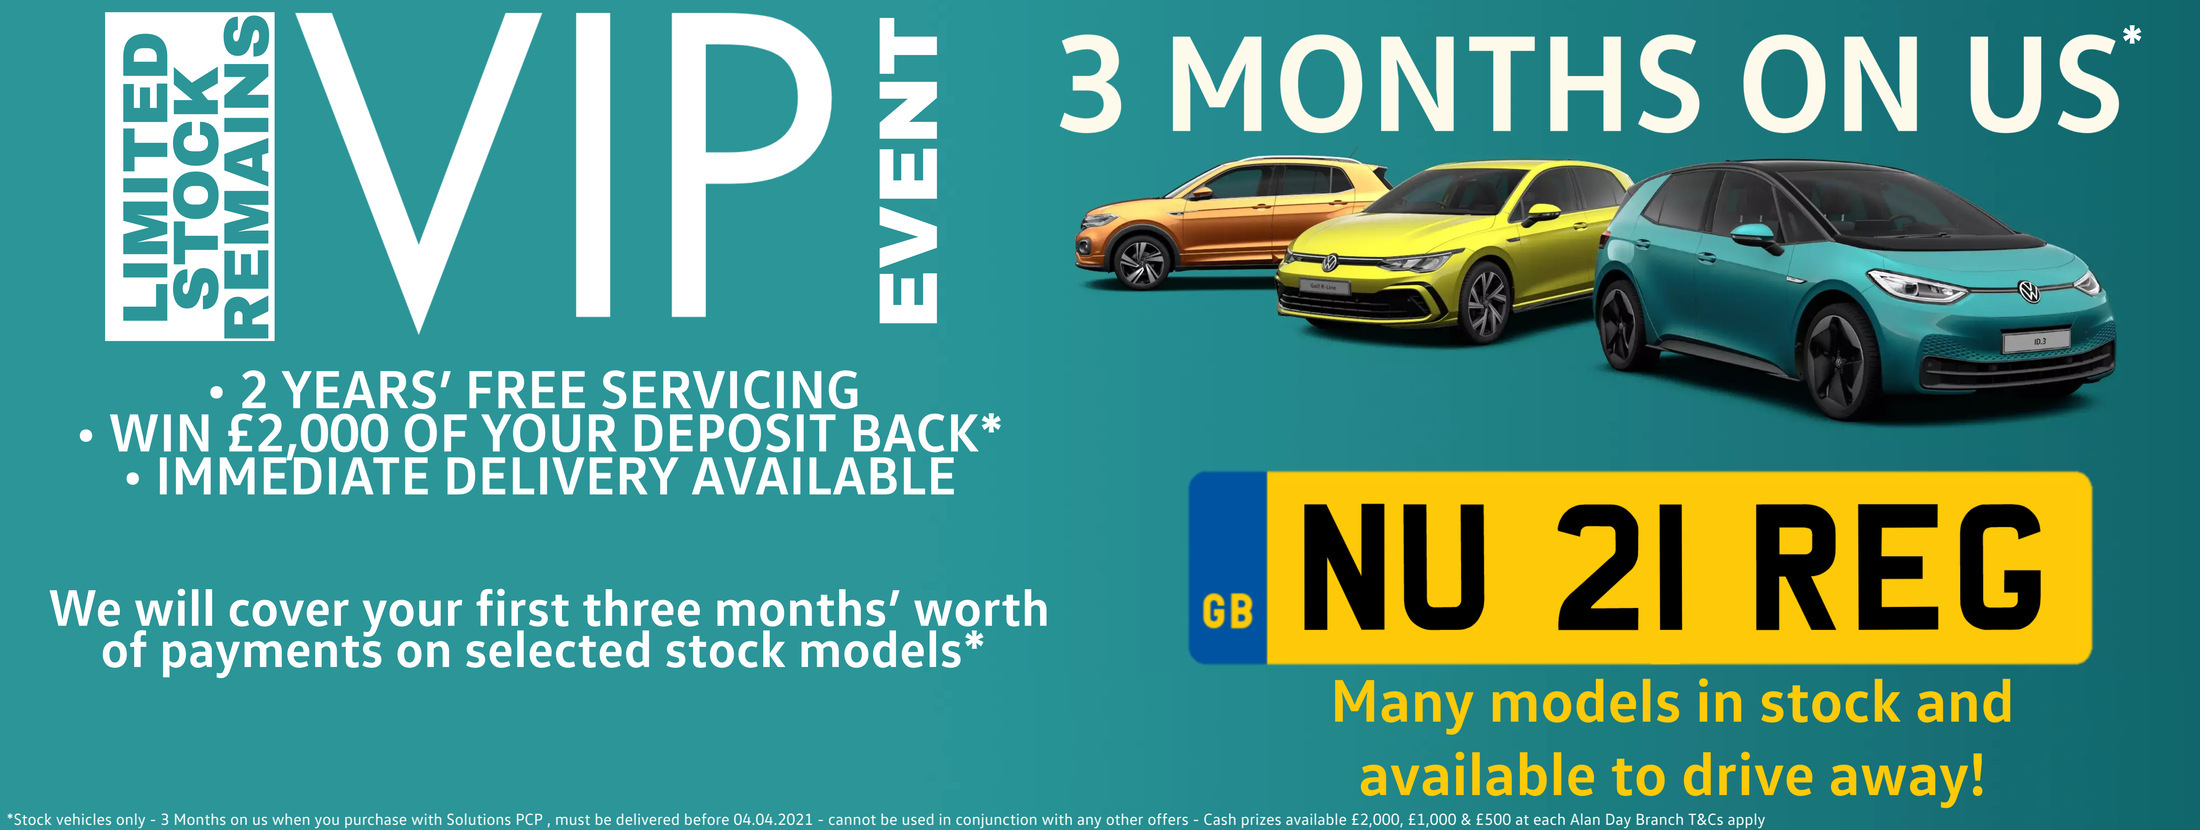 VIP New Car Stock Clearance